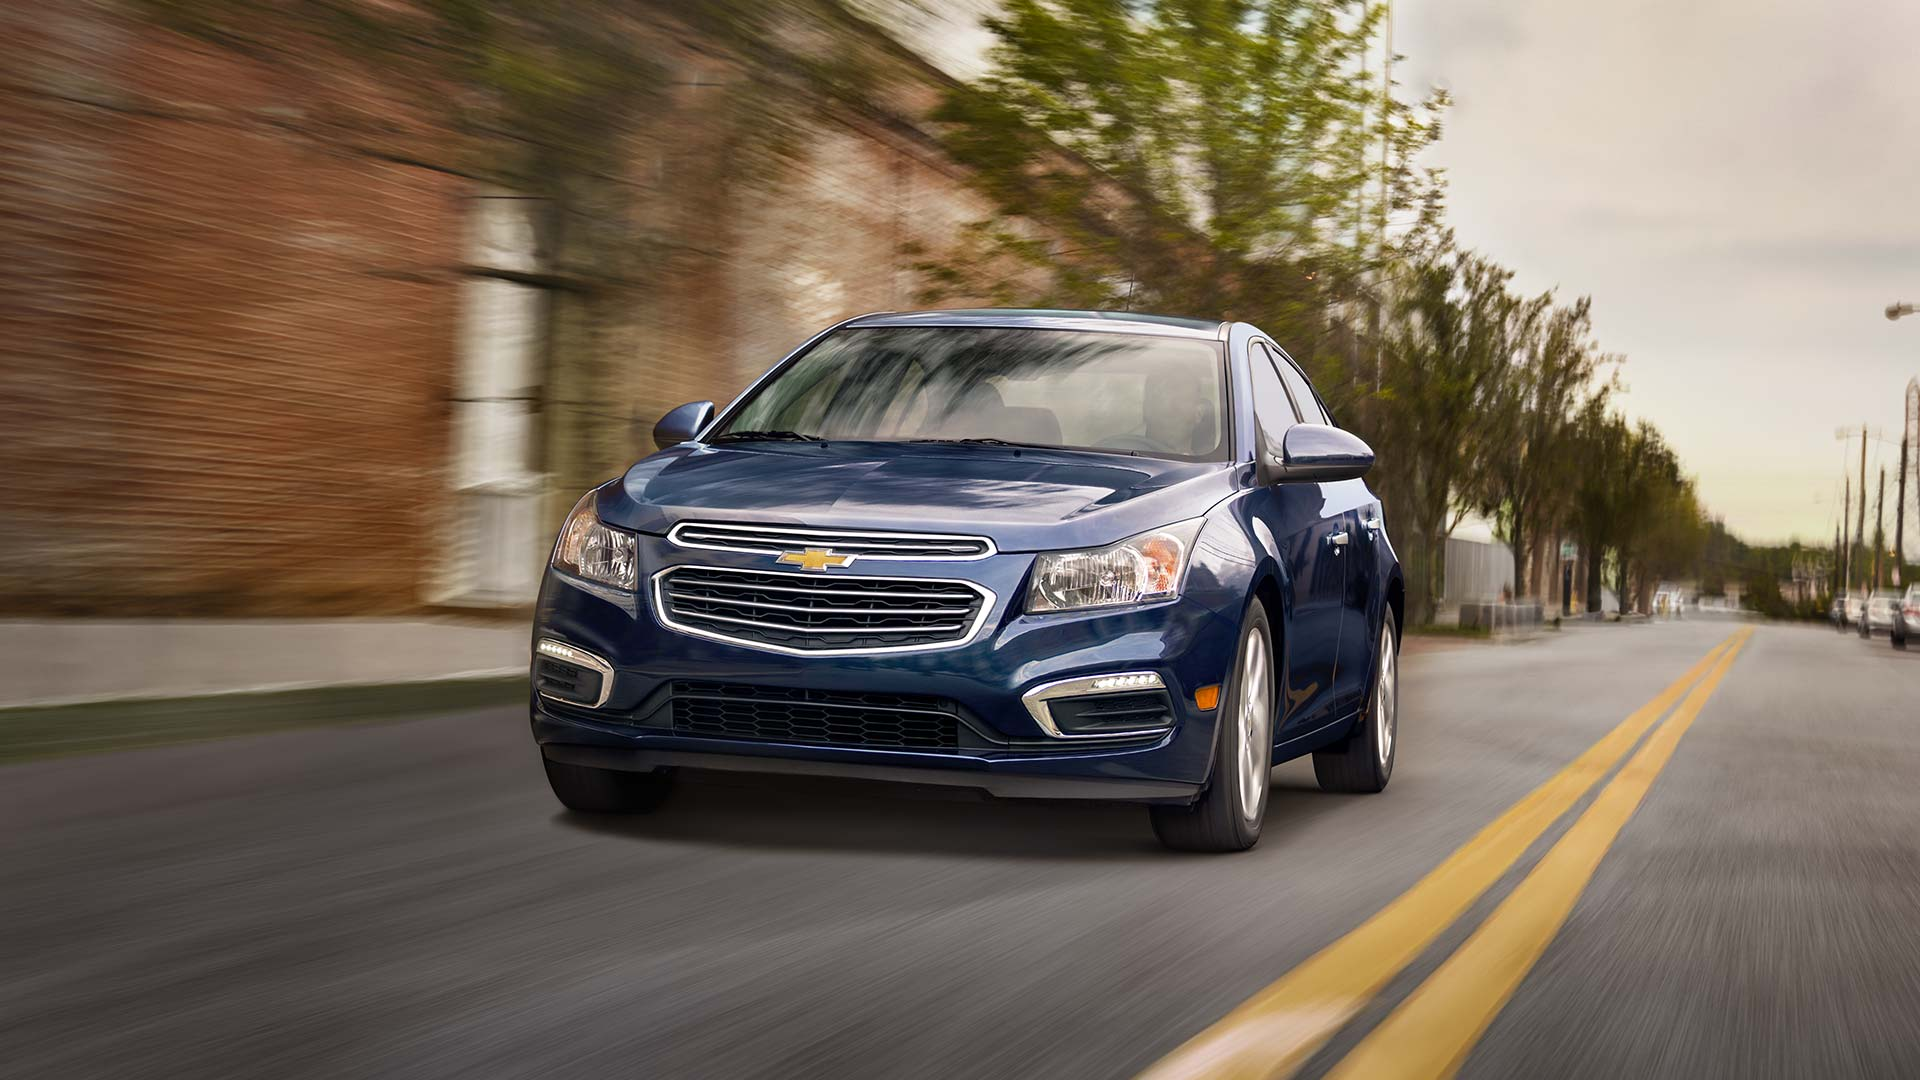 Galles Chevrolet Released Page On 2016 Chevy Cruze Limited ...